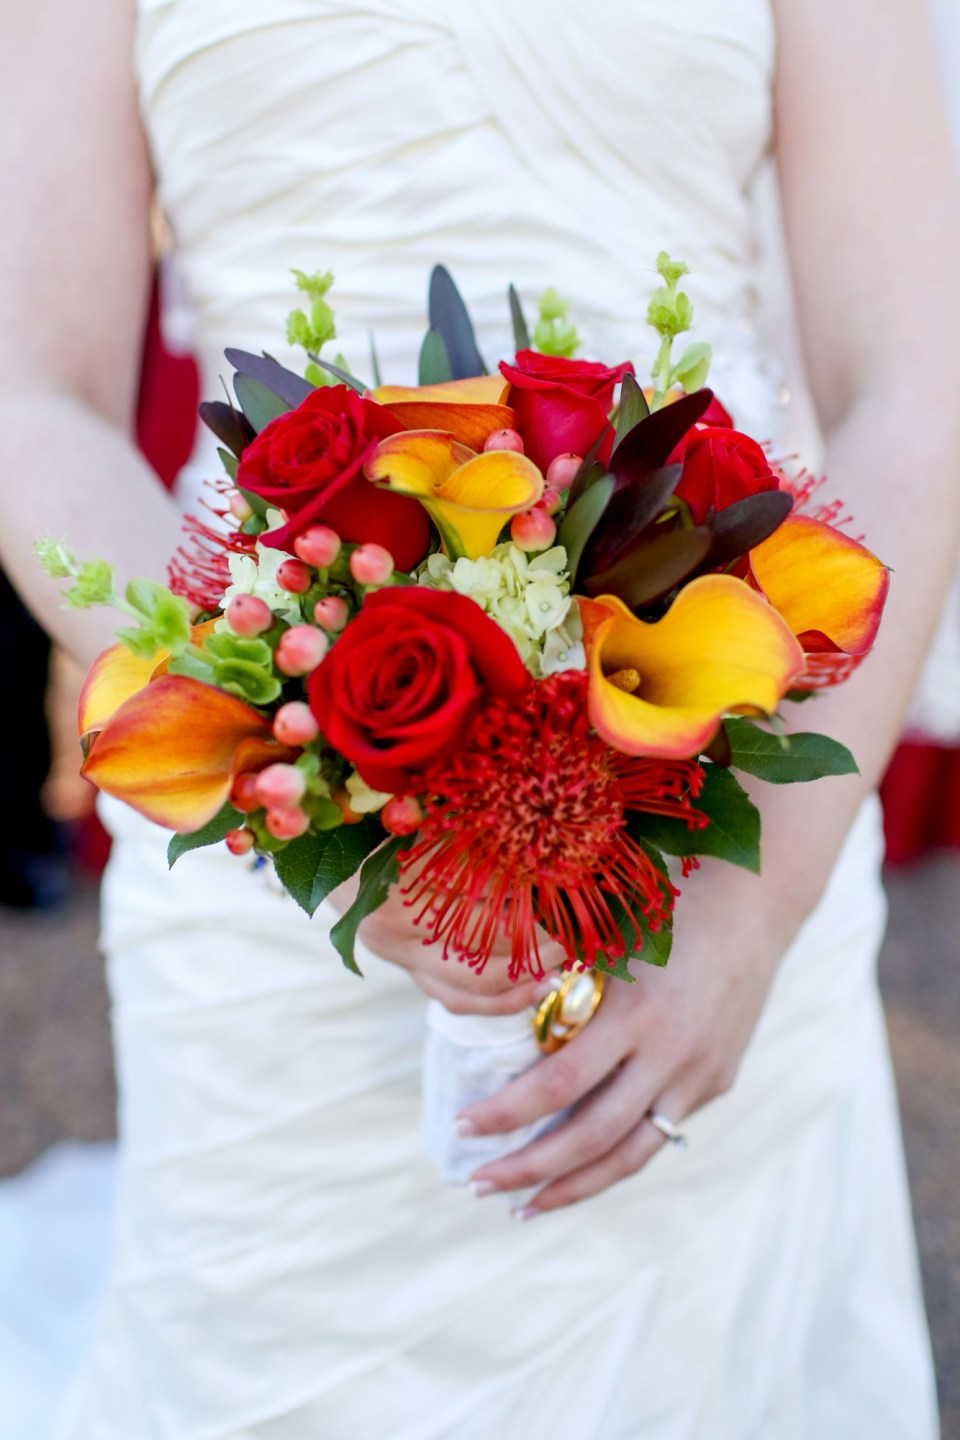 Fall-Wedding-Bouquet-Inspiration-Flowers-Bridal-Bridesmaids400